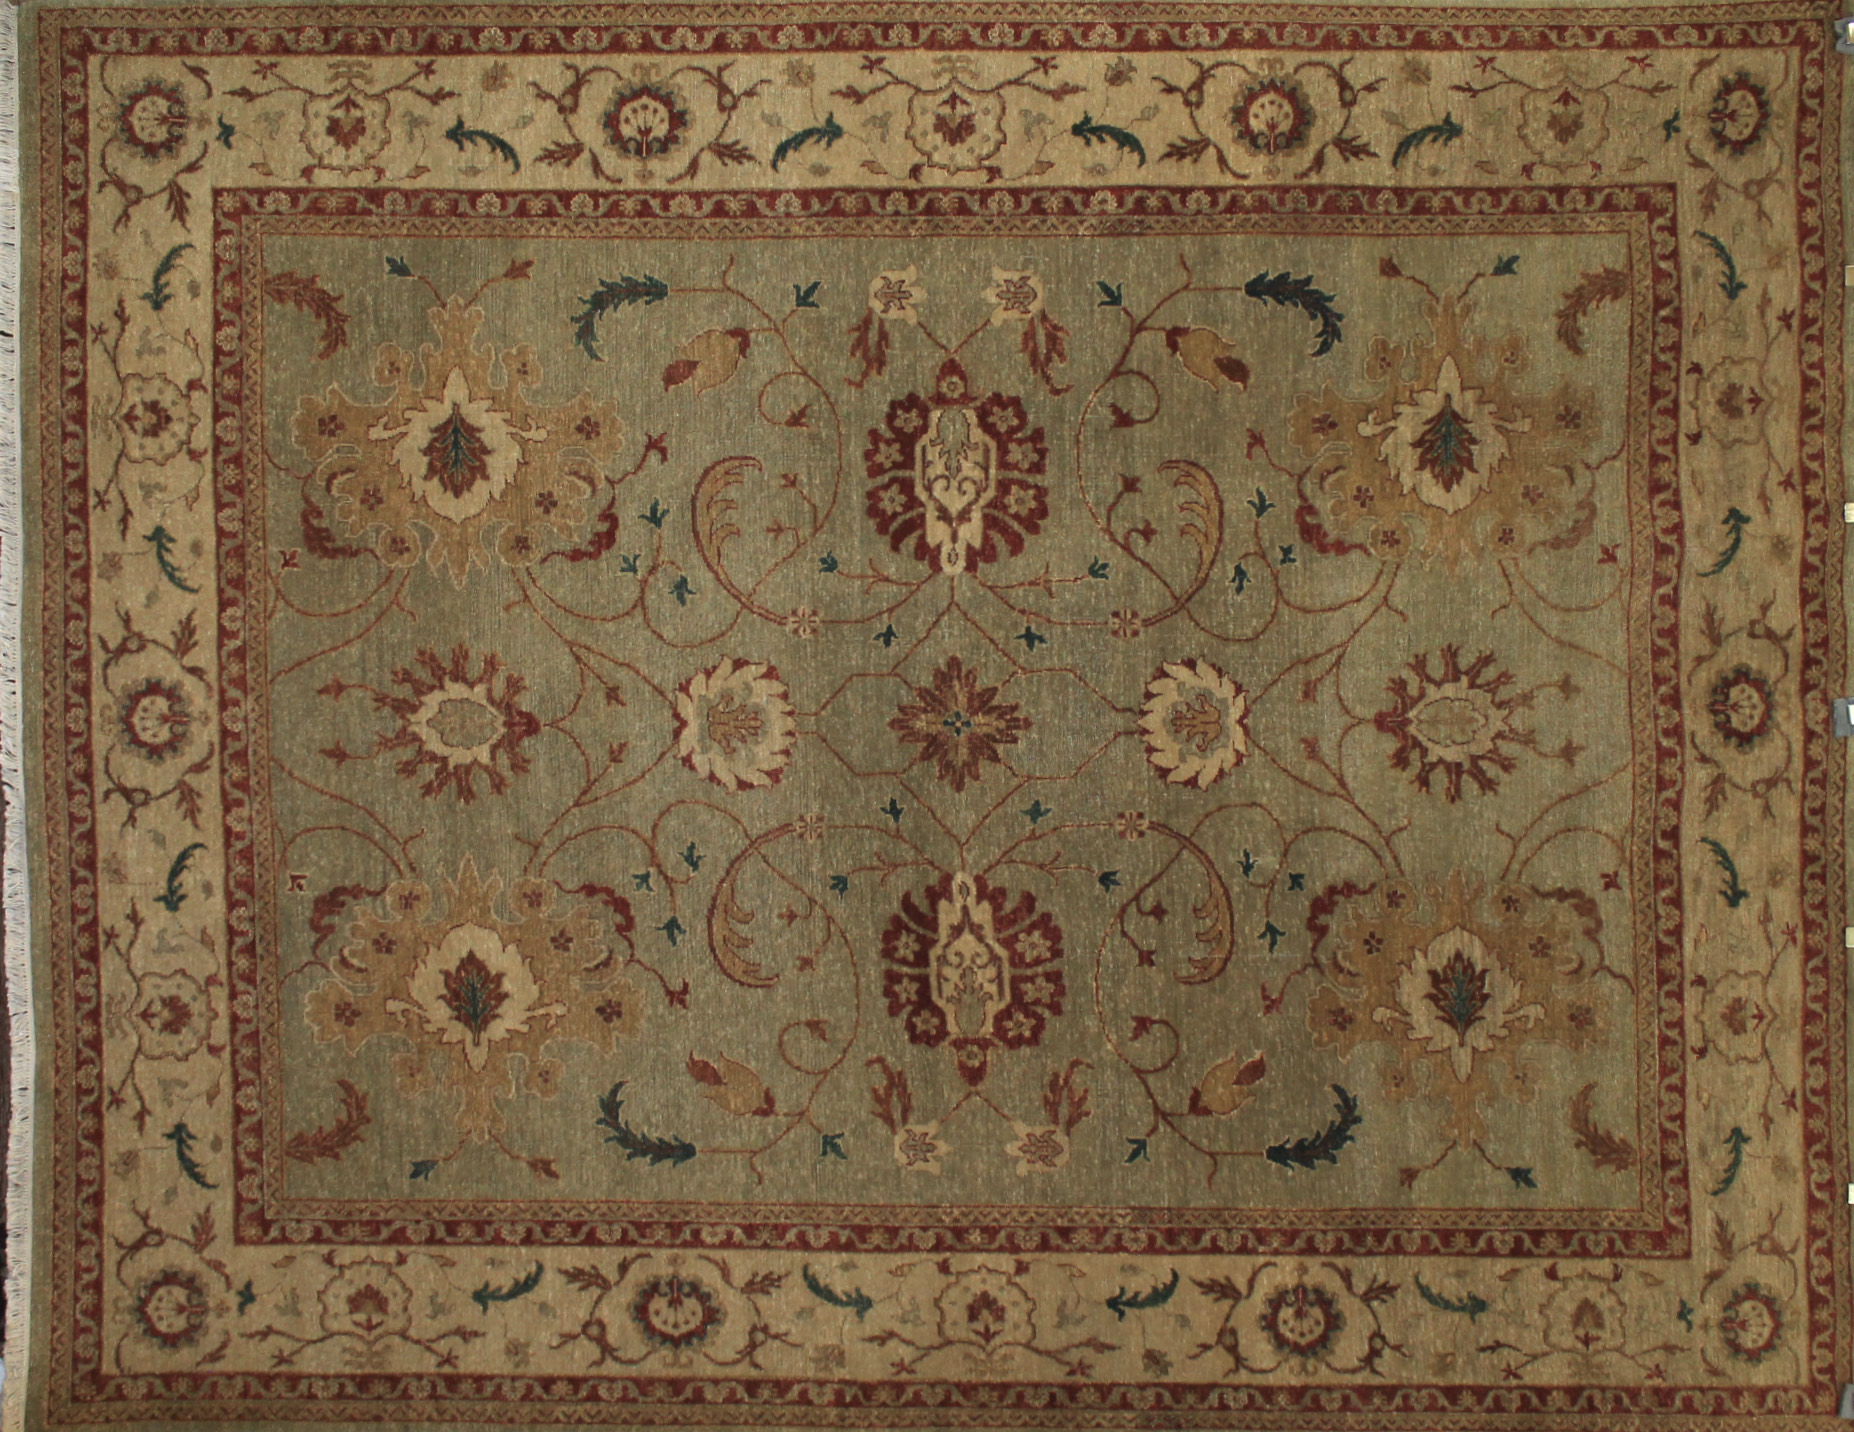 8x10 Traditional Hand Knotted Wool Area Rug - MR14311